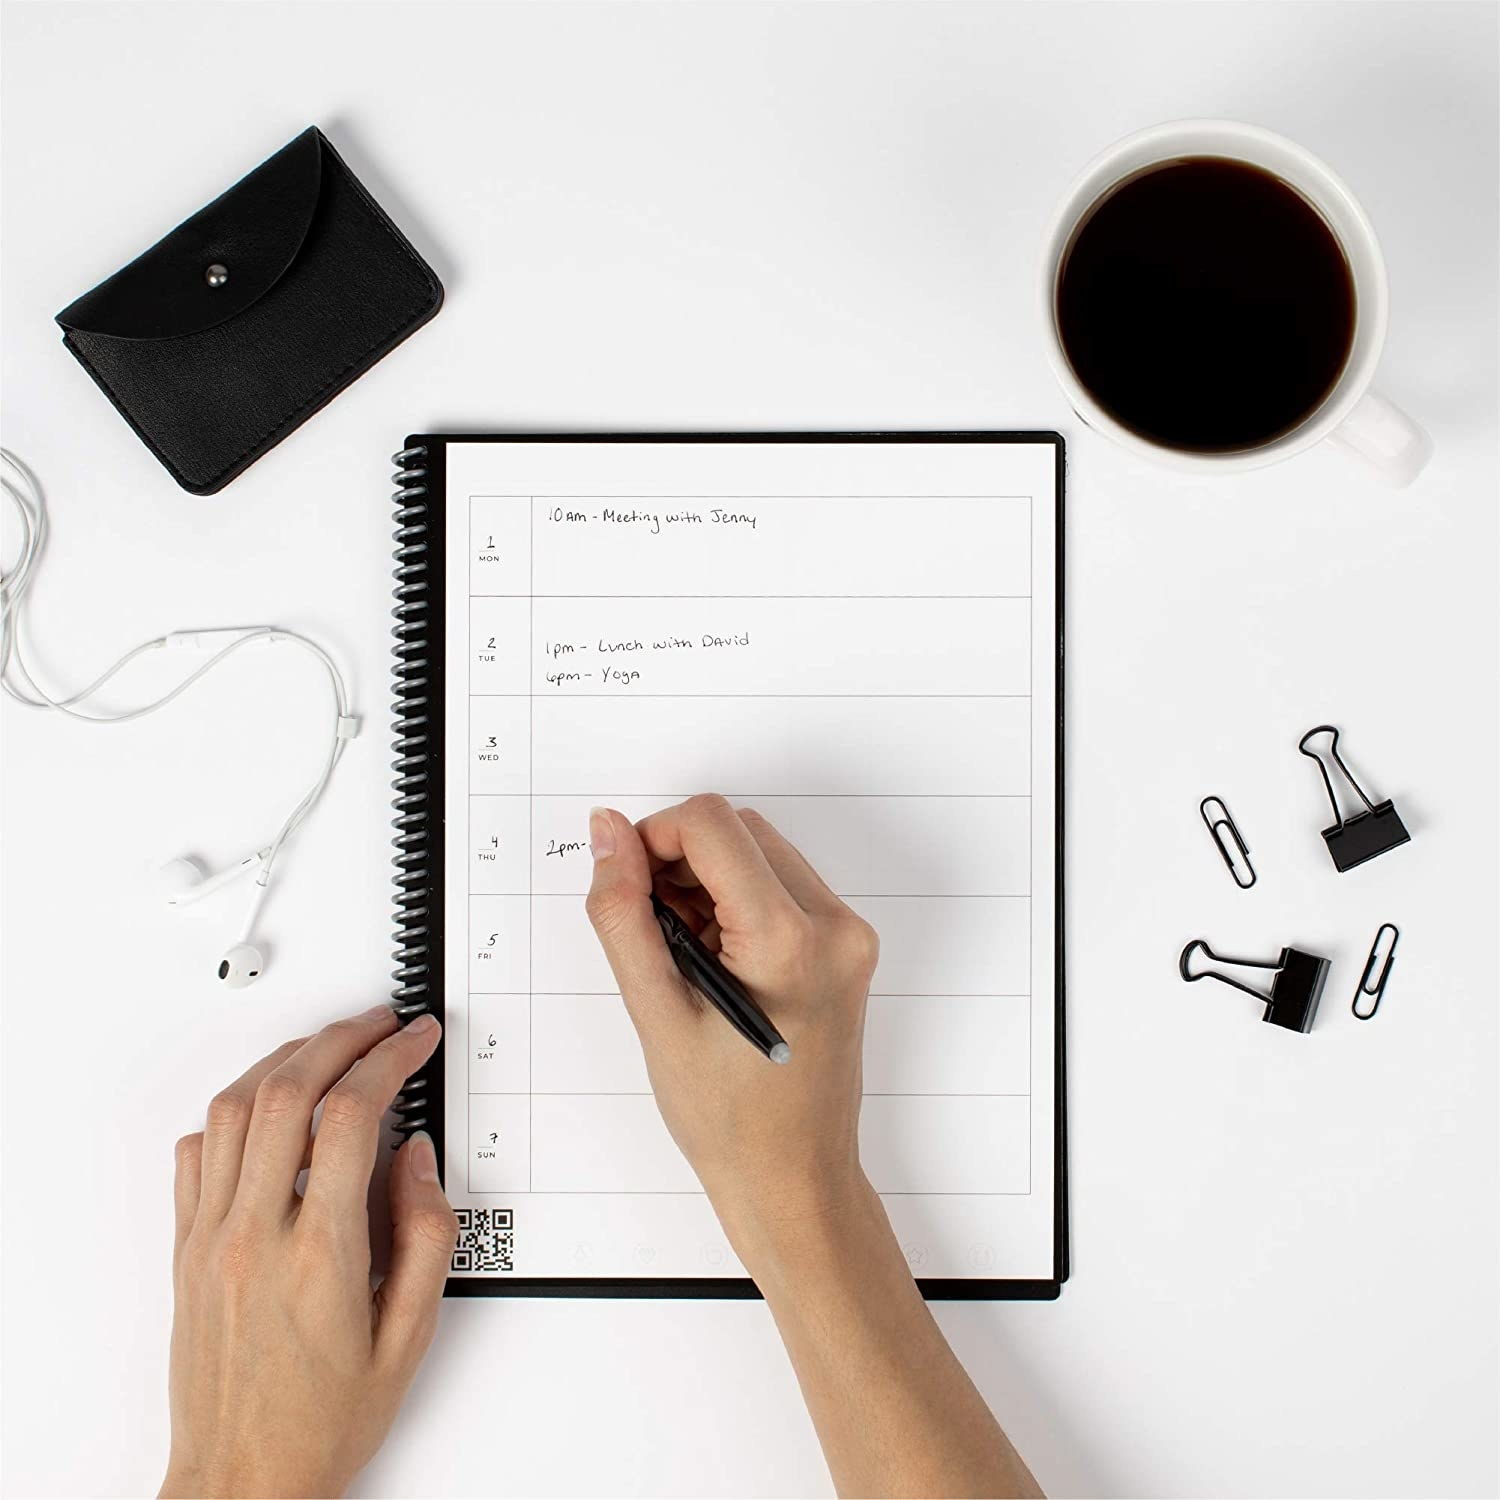 Model using pilot frixion pen to write in Rocketbook notebook on table